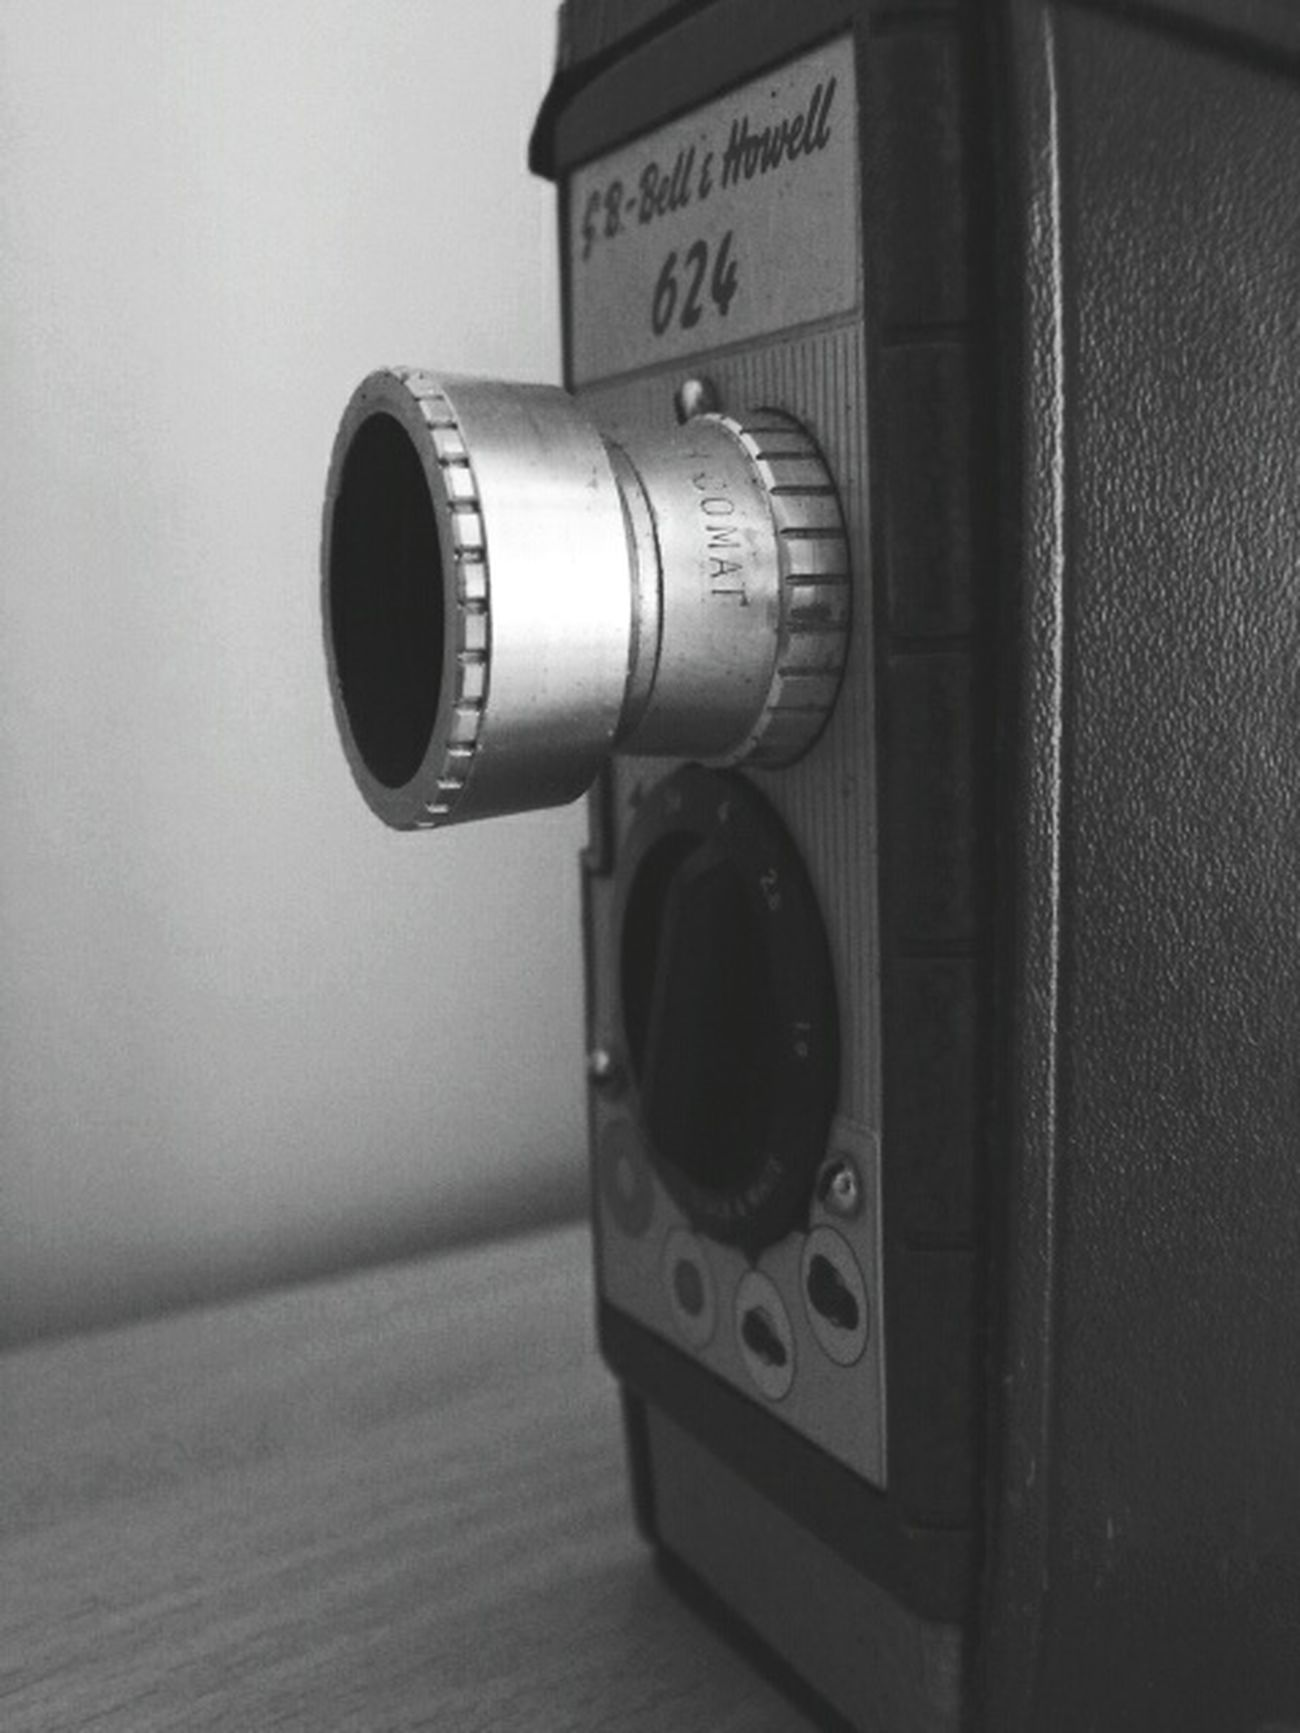 Lumix Photos Black And White Filter Old Camera Bell And Howell Interior Views Vintage Camera Vintage Style Vintage Photography Equipment